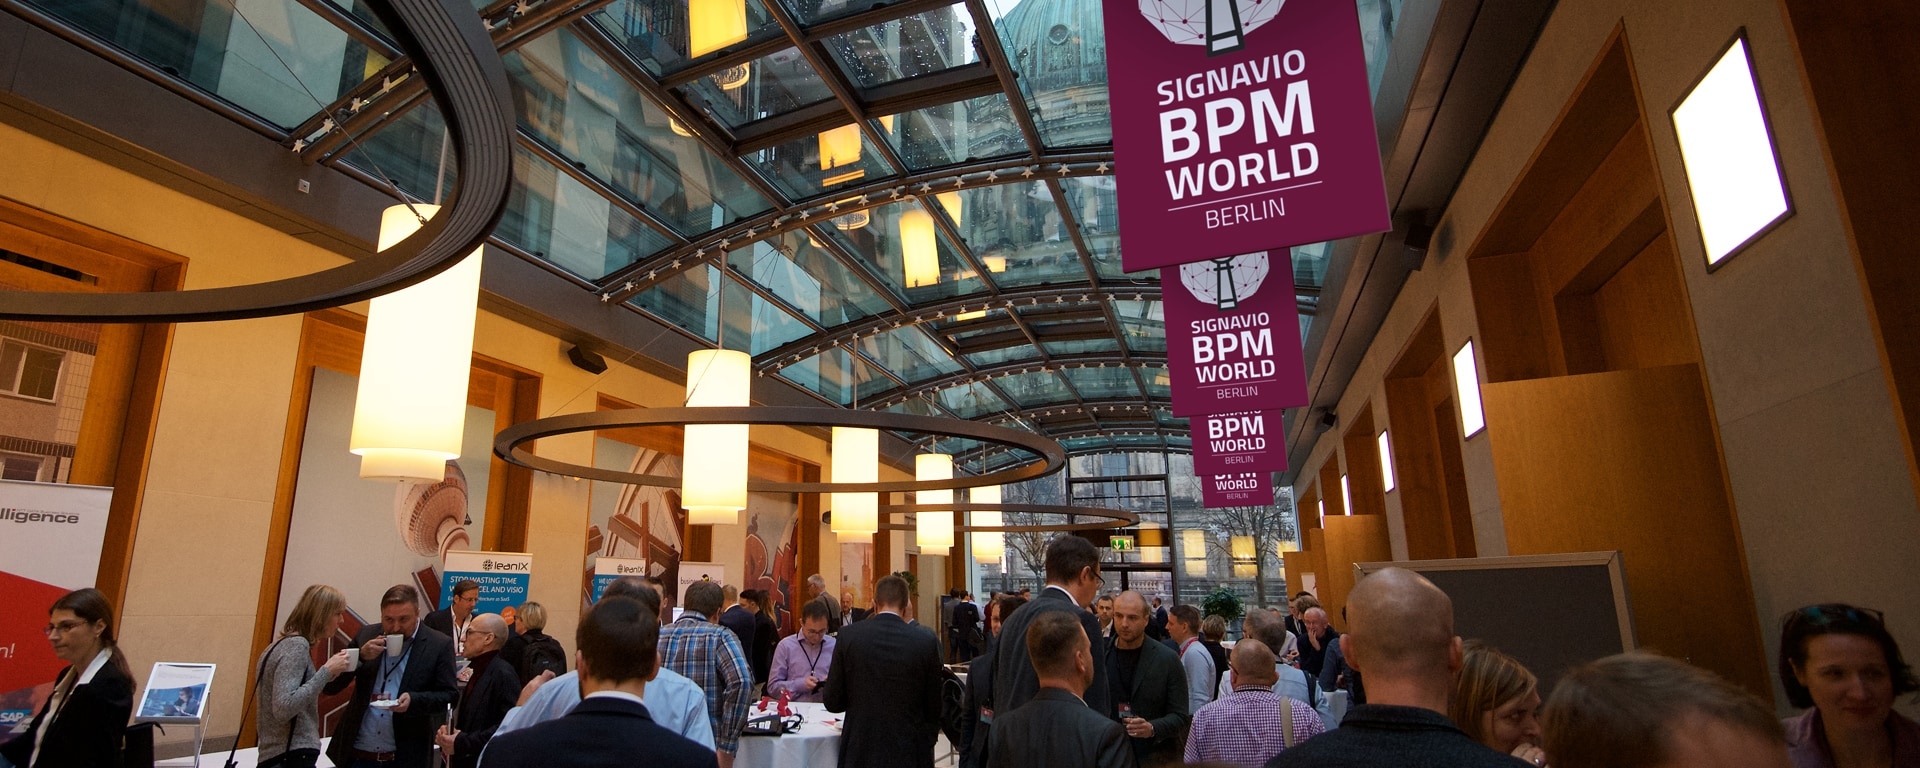 Signavio in 2018 - BPM World